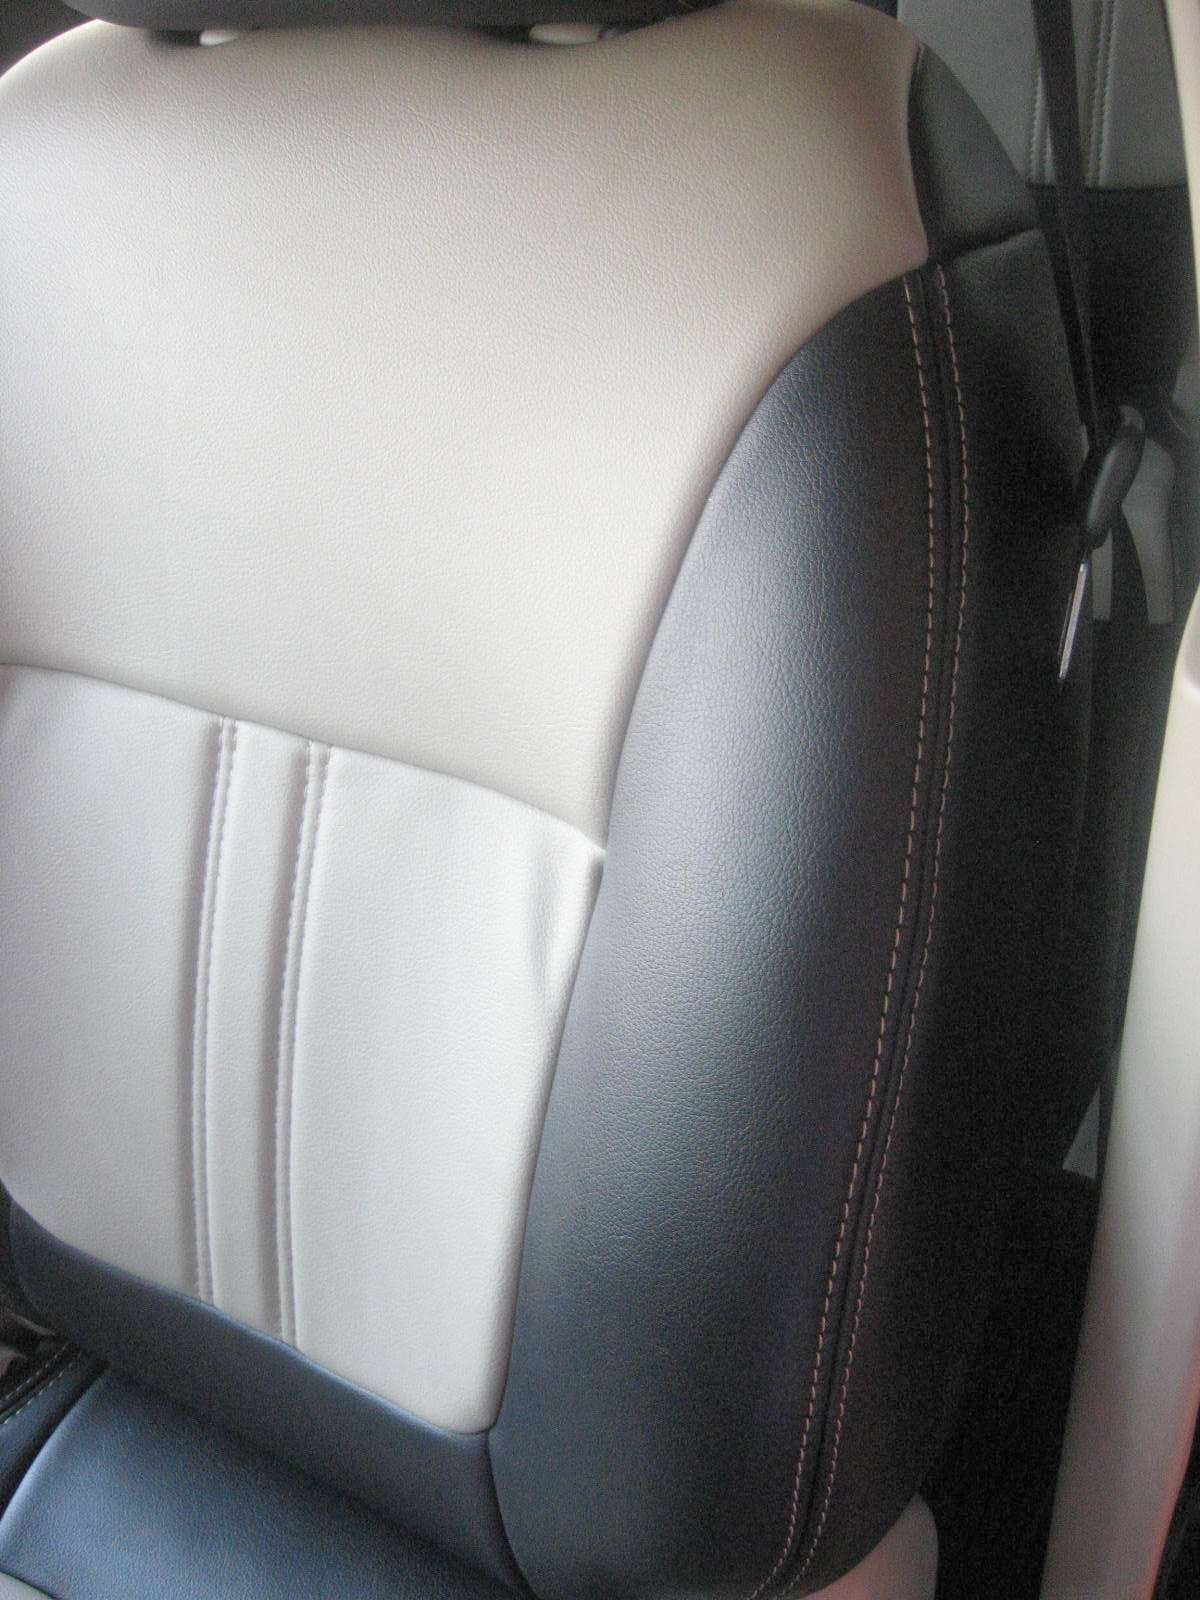 Mitsubishi Montero Car Seat Covers